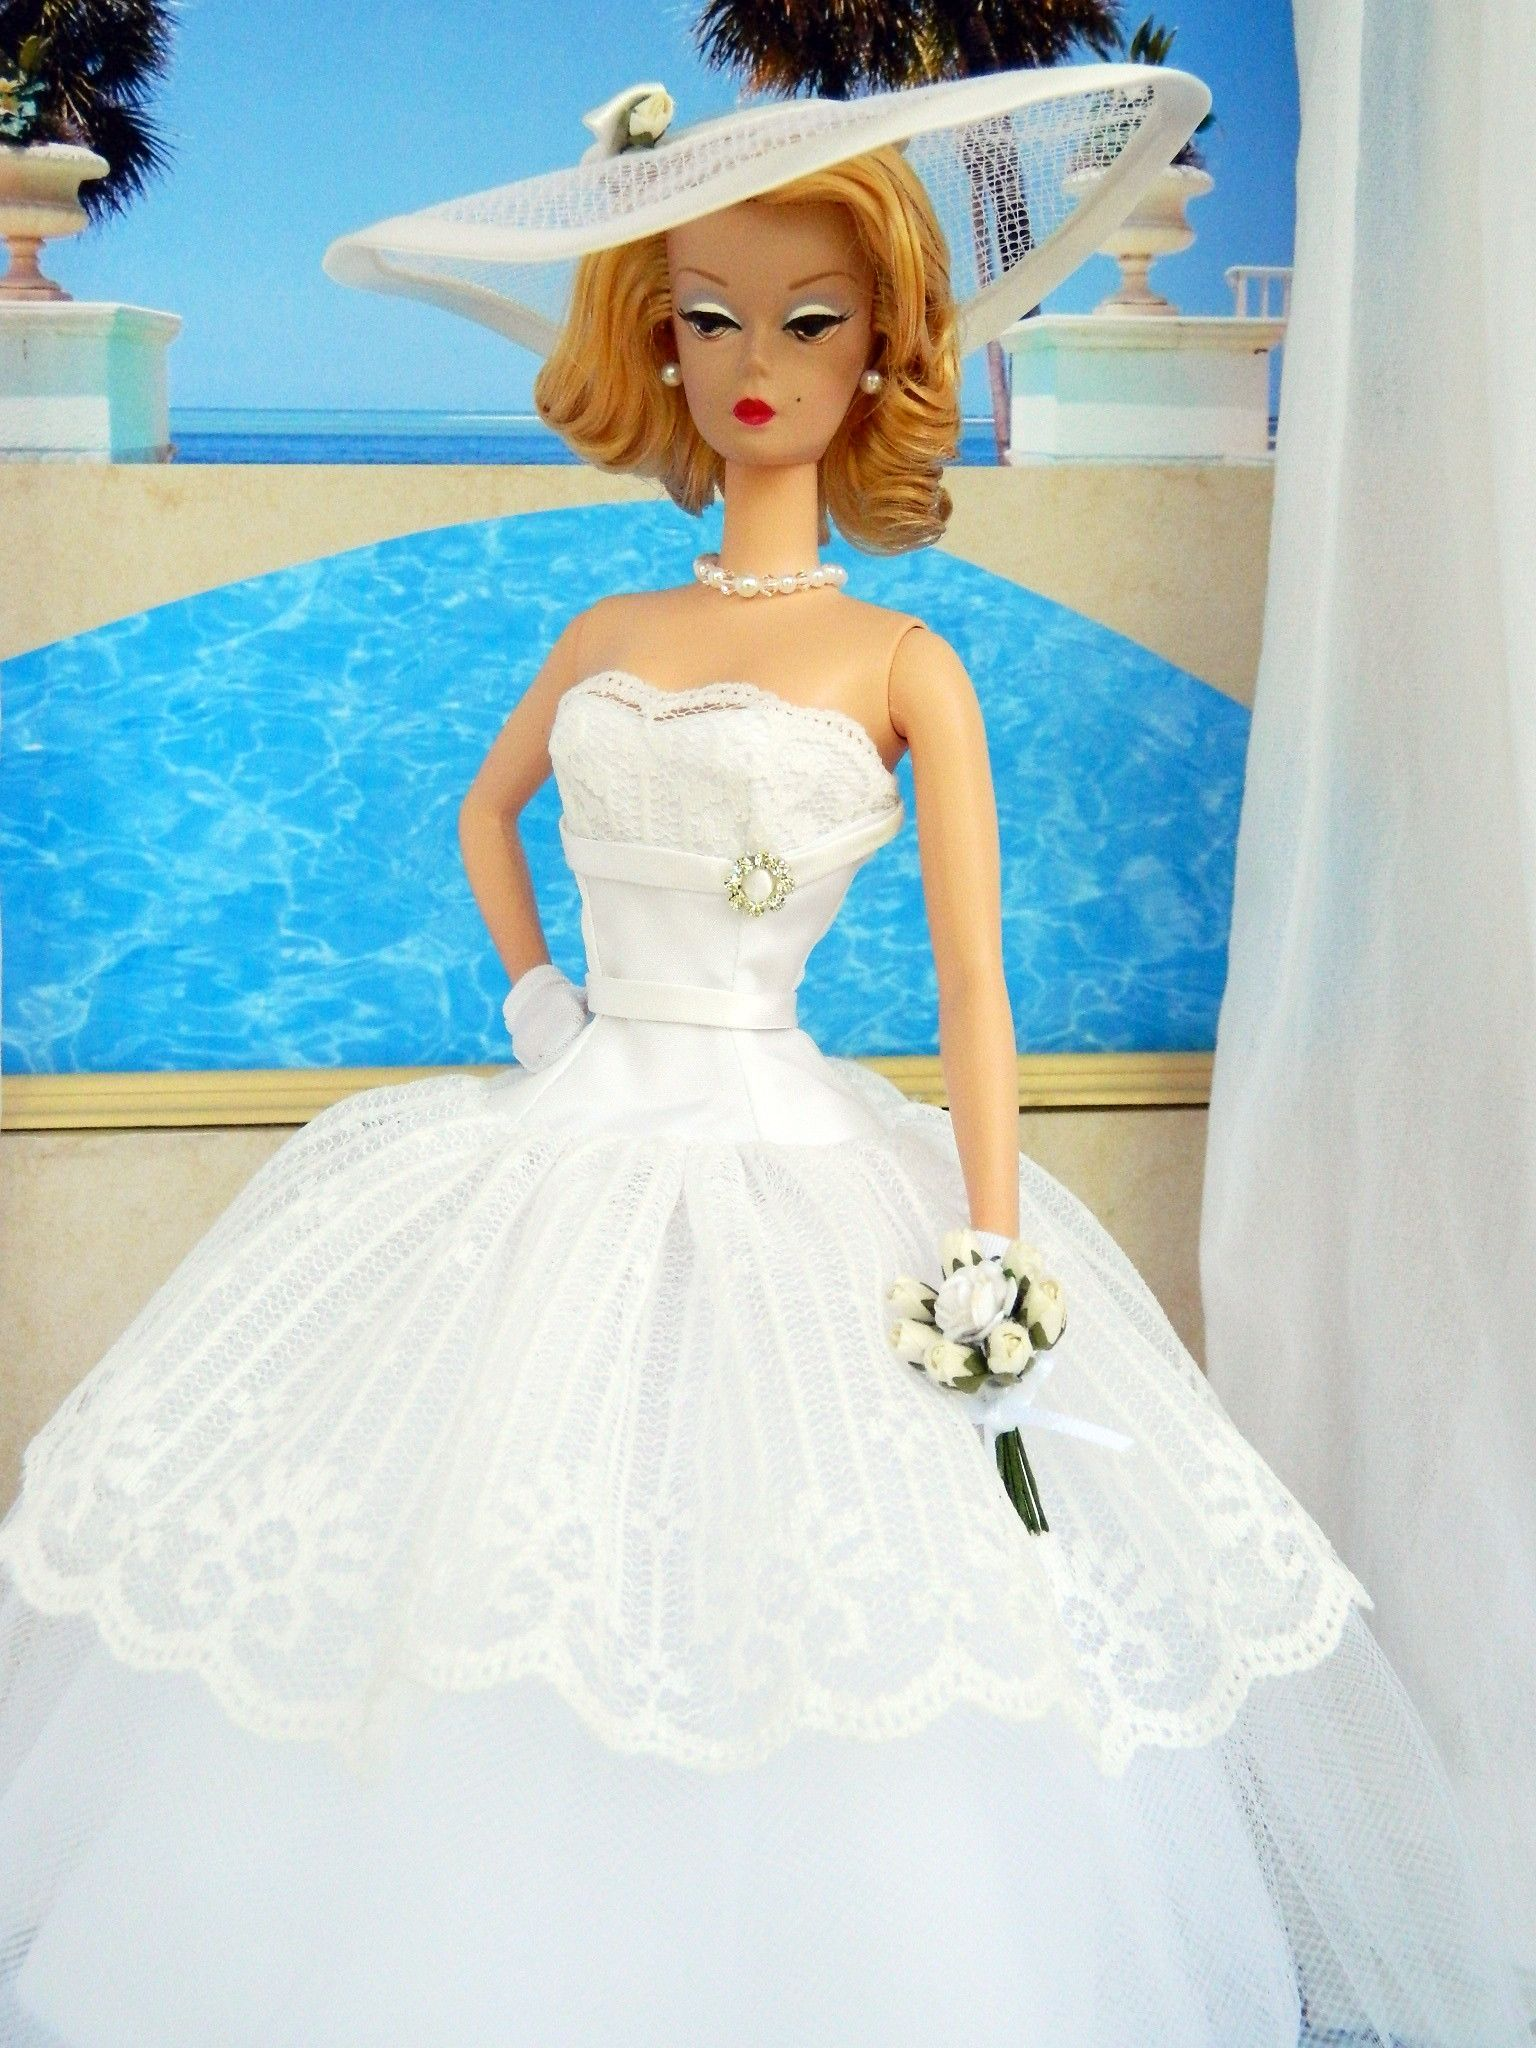 Pool Party Bride Fashion for Silkstone Barbie by Joby Originals ...